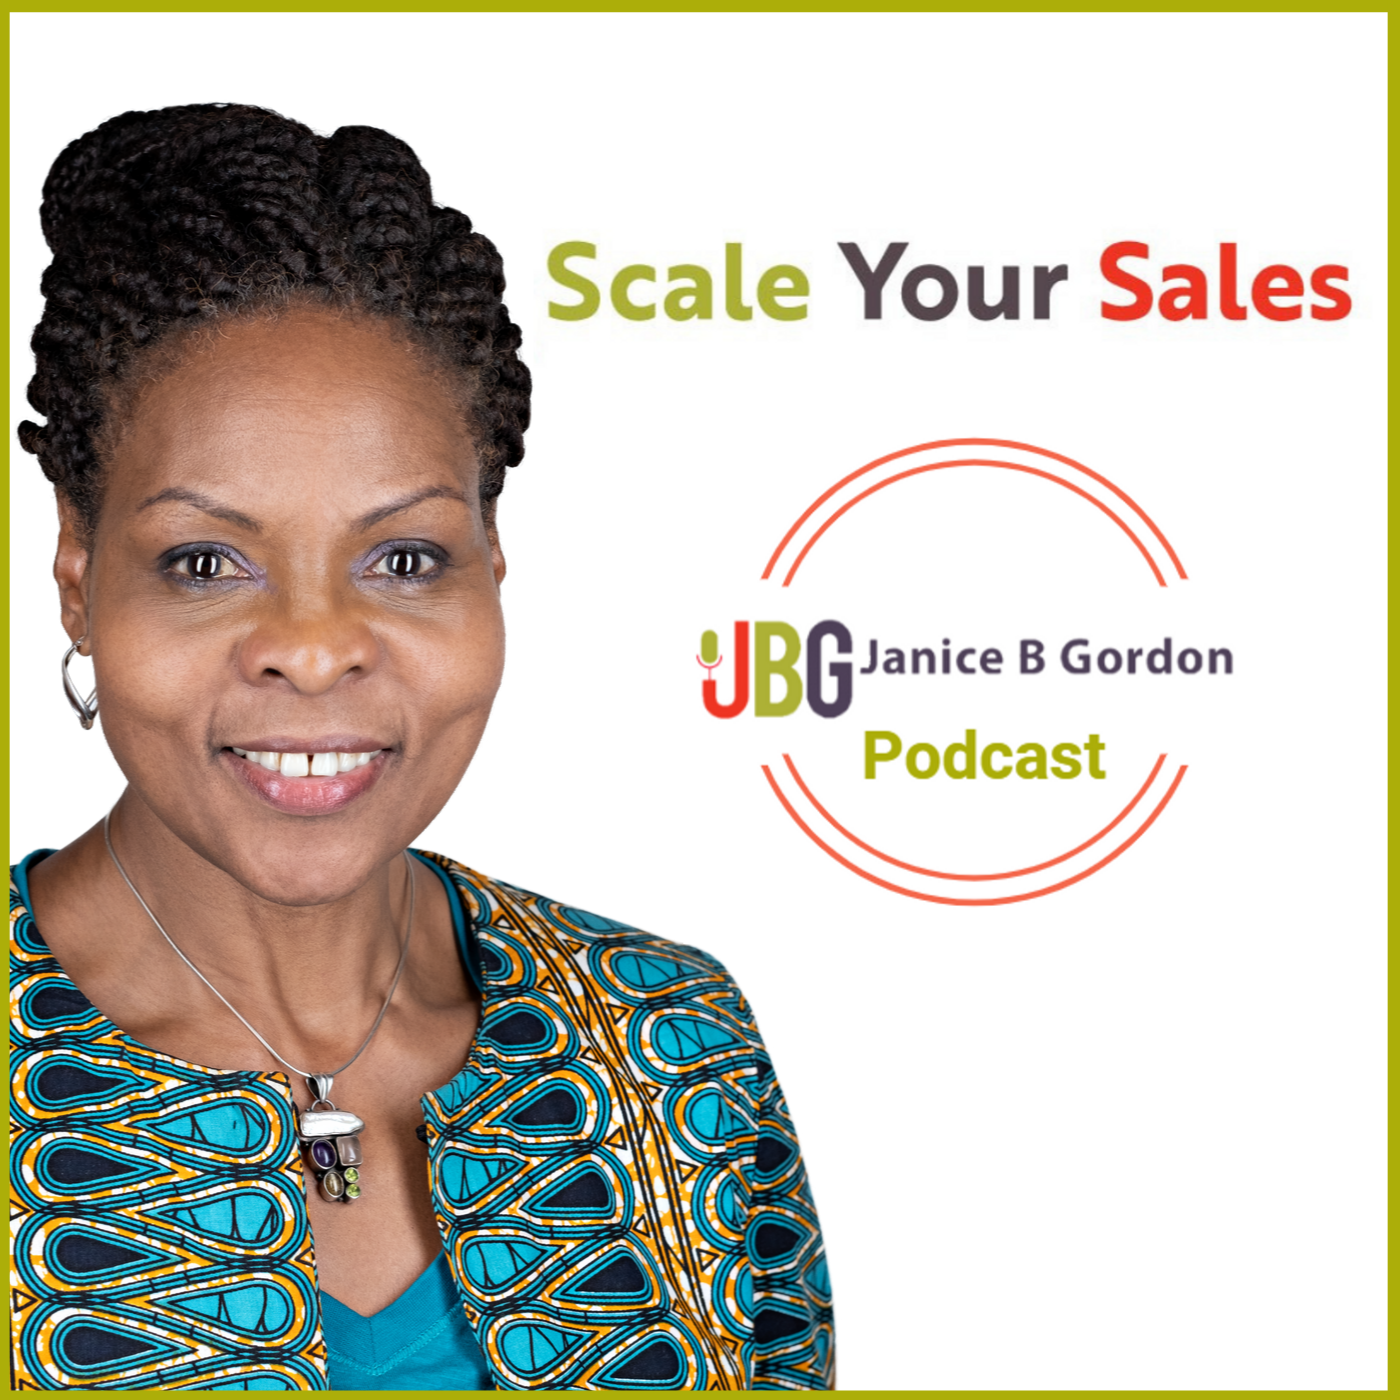 Scale Your Sales Podcast show image